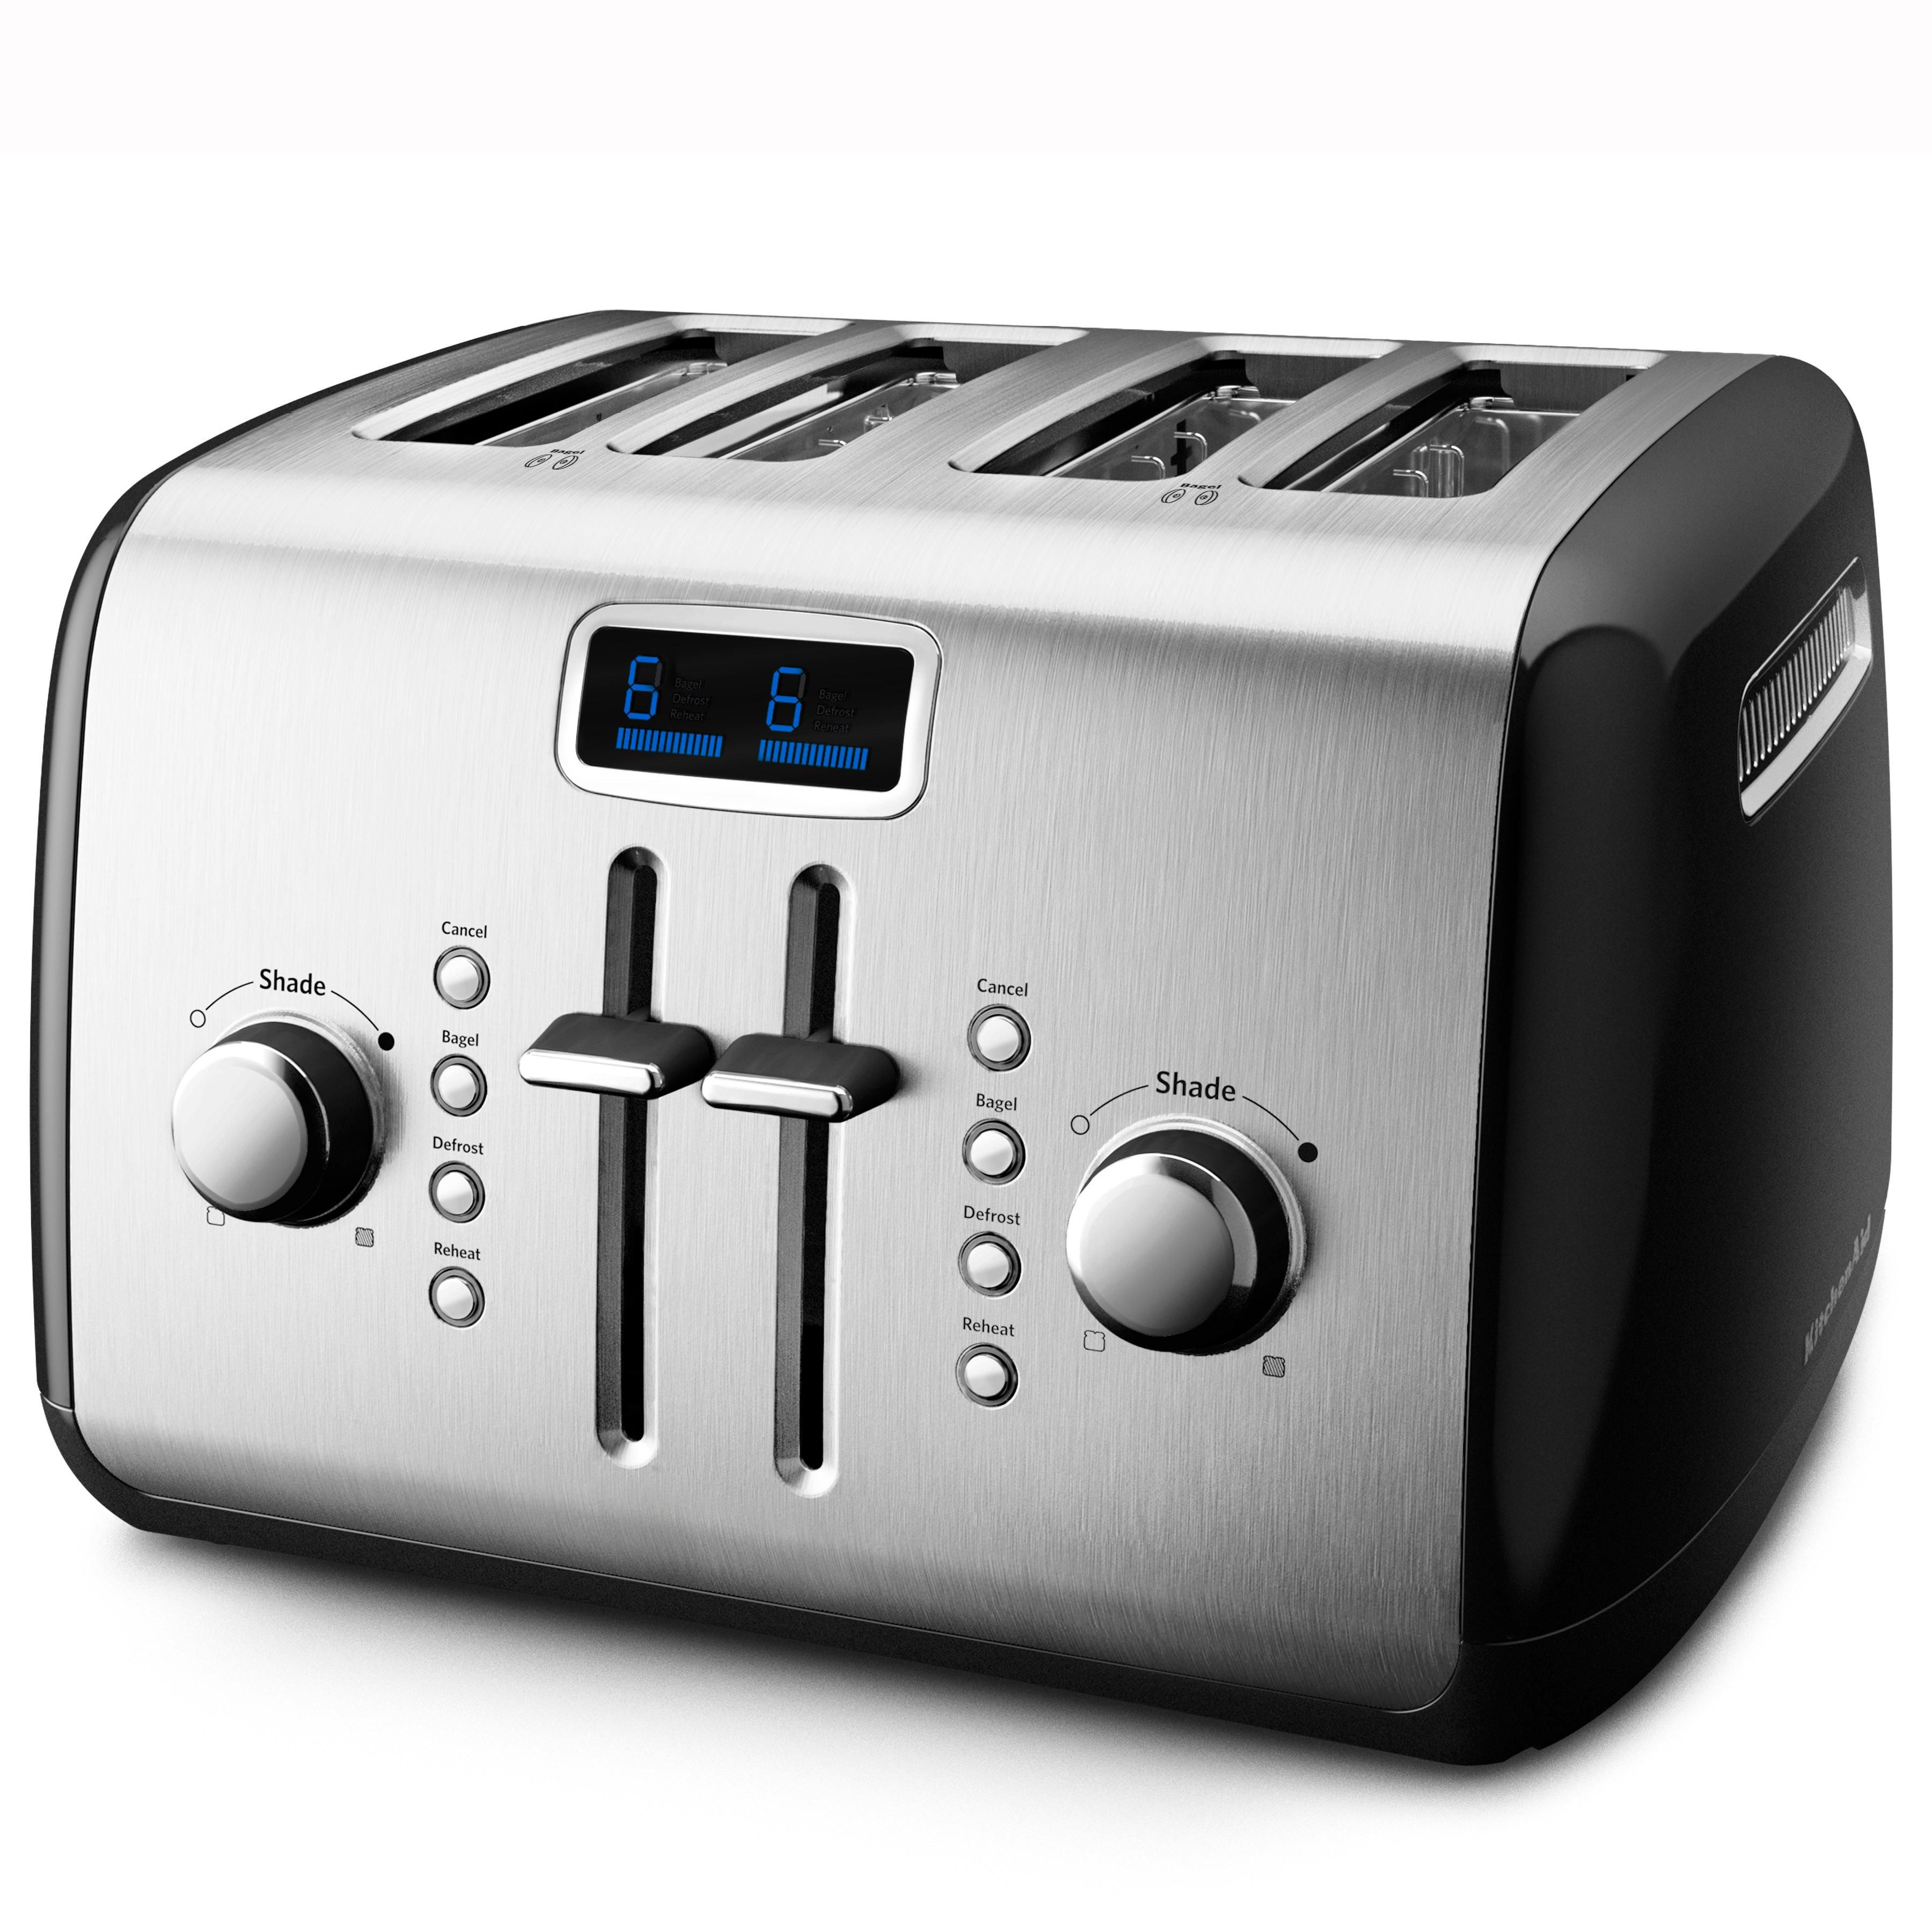 prod d sears sharpen product four slice wid hei kenmore elite details outlet jsp toaster spin op